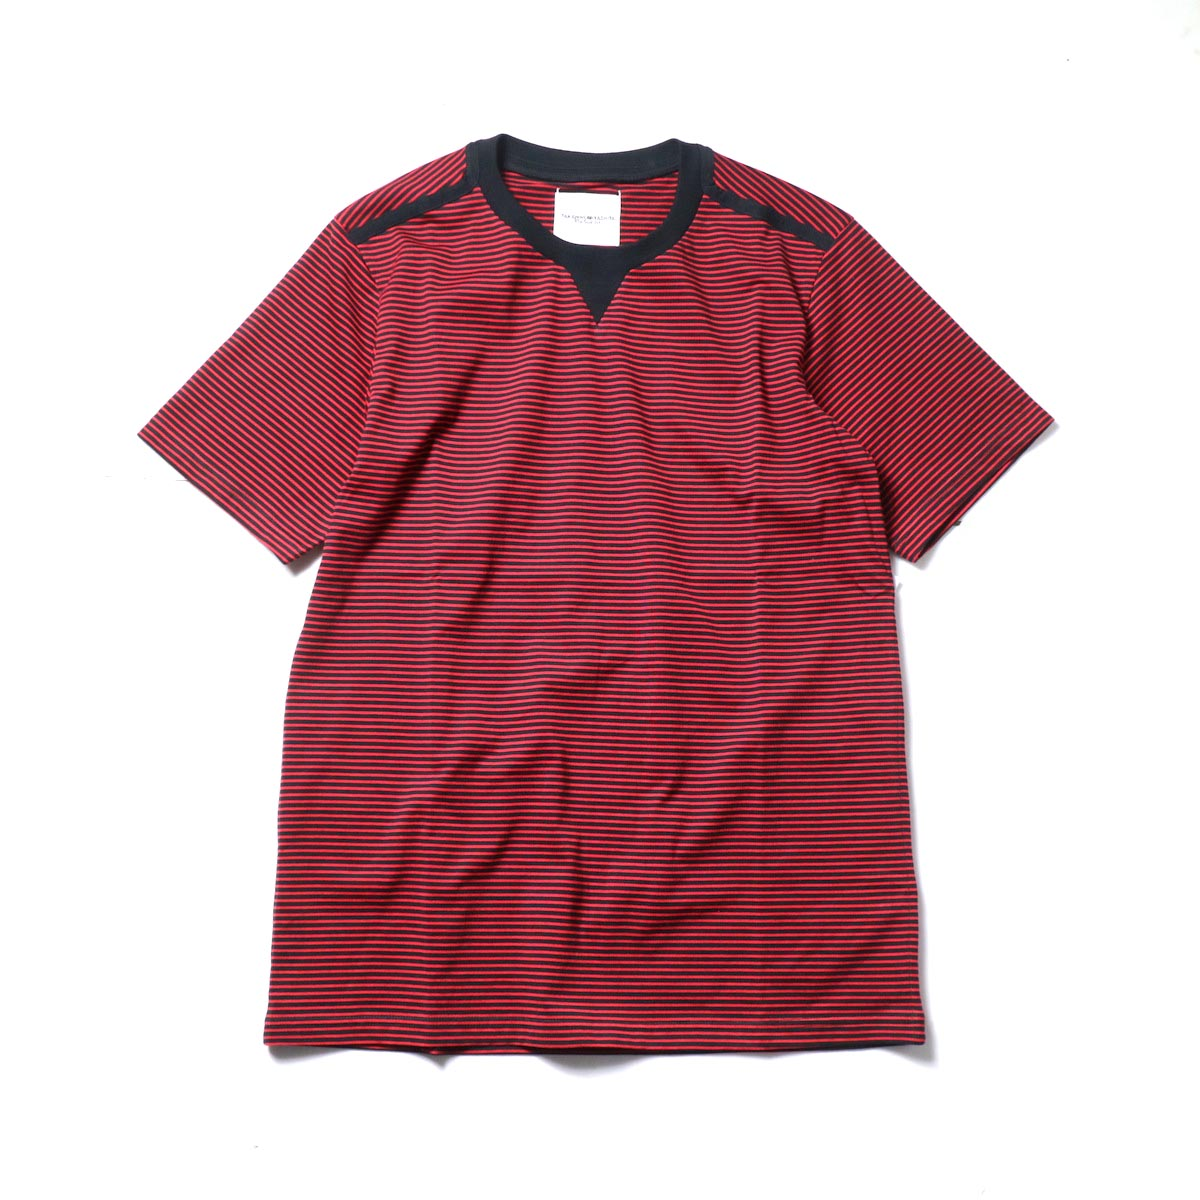 The Soloist / swc.0009a crew neck s/s striped tee. (Black × Red)